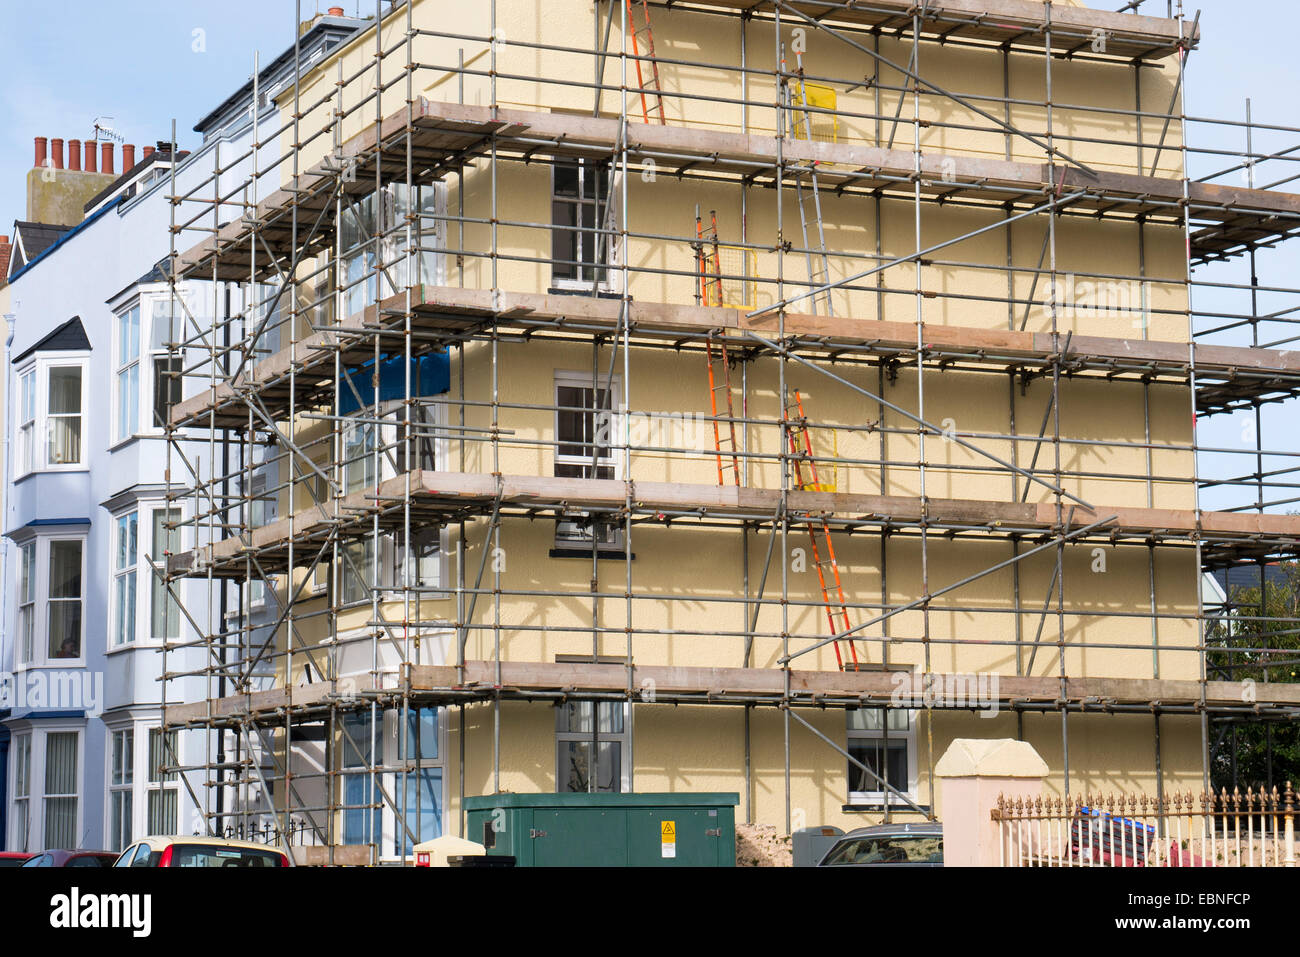 Scaffolding on property for repair - Stock Image